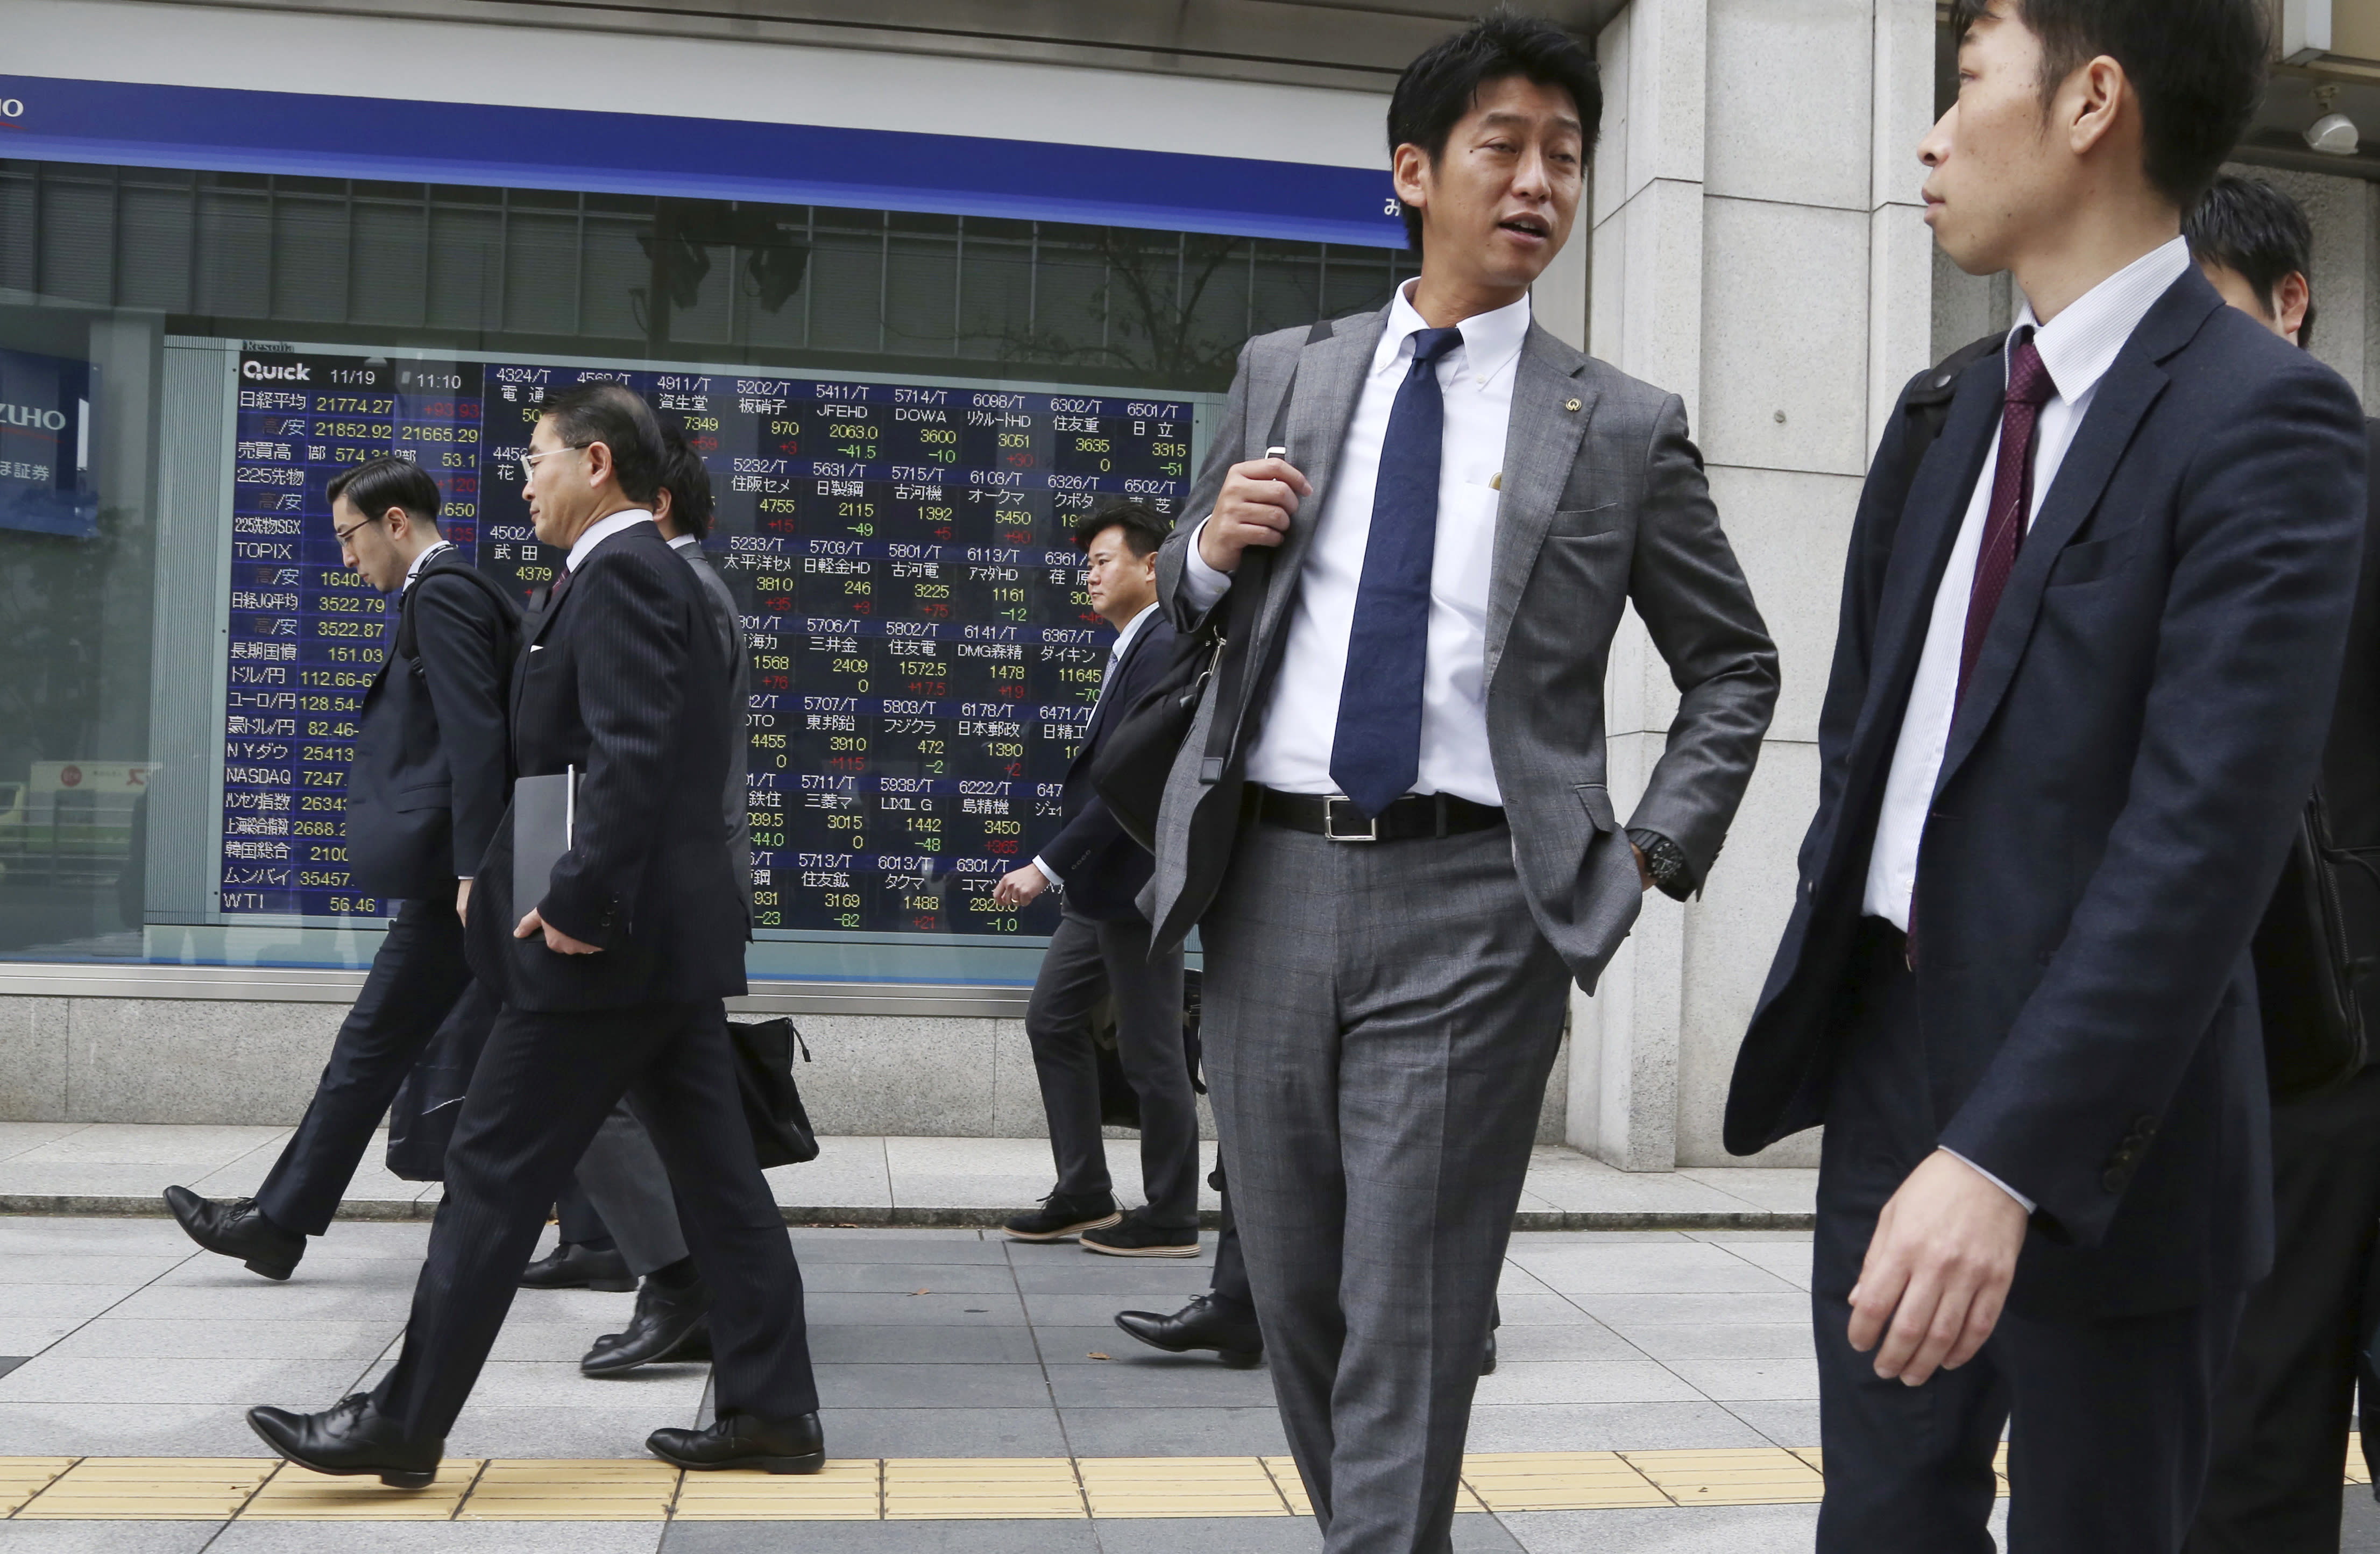 People walk by an electronic stock board of a securities firm in Tokyo, Monday, Nov. 19, 2018. Asian shares were mostly higher Monday after a buying spree on Wall Street kept up investor optimism into a new week, despite continuing worries about trade tensions. (AP Photo/Koji Sasahara)